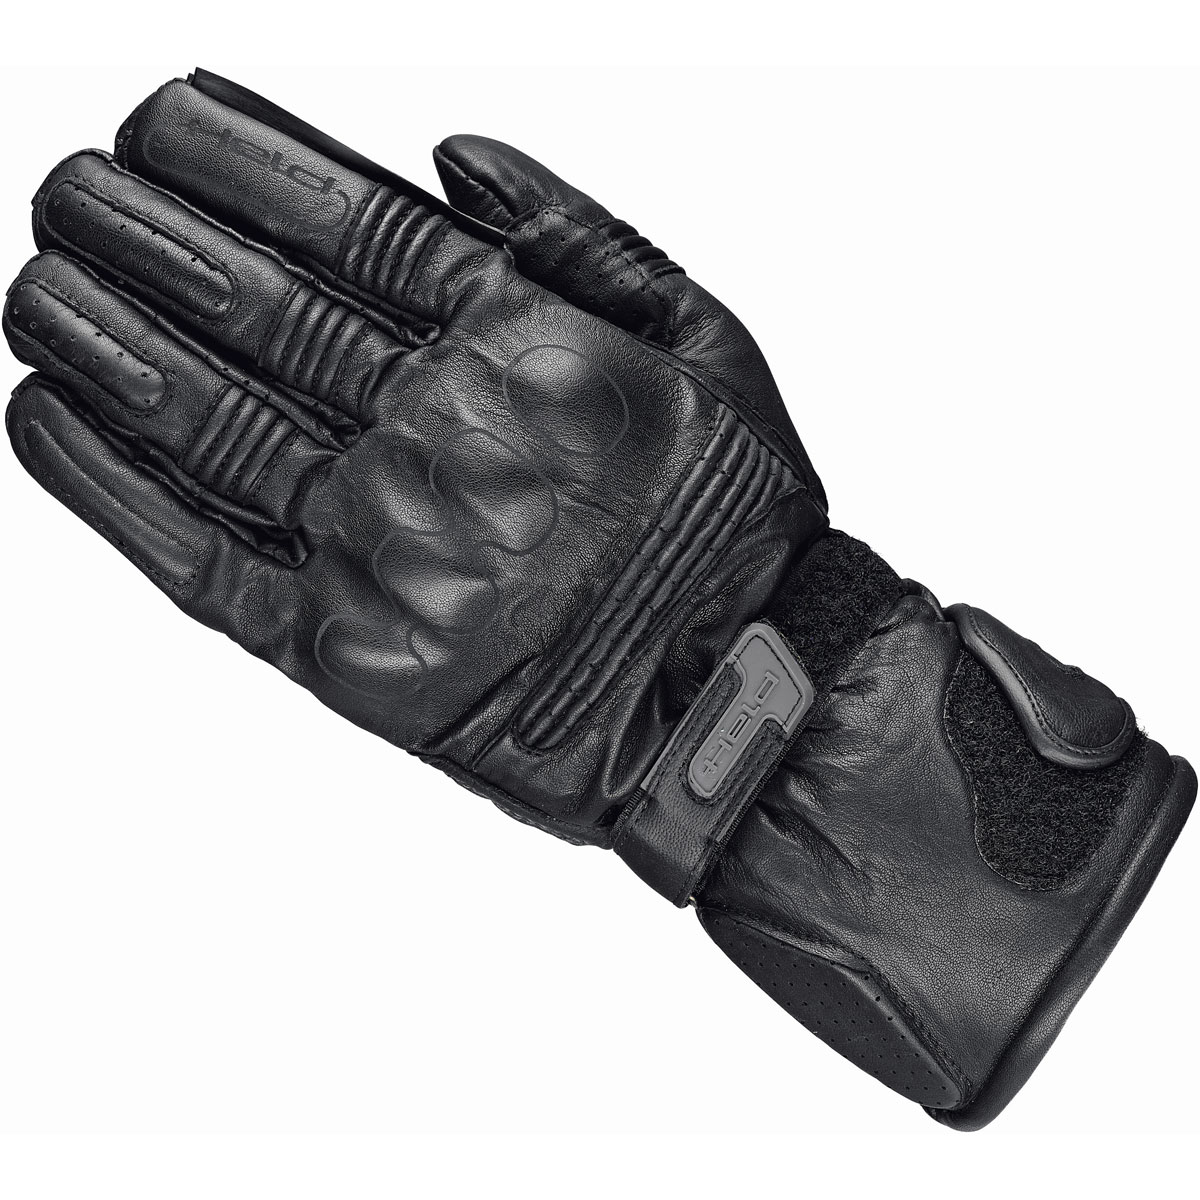 Held 2616 Tour Guide Summer Motorcycle Gloves